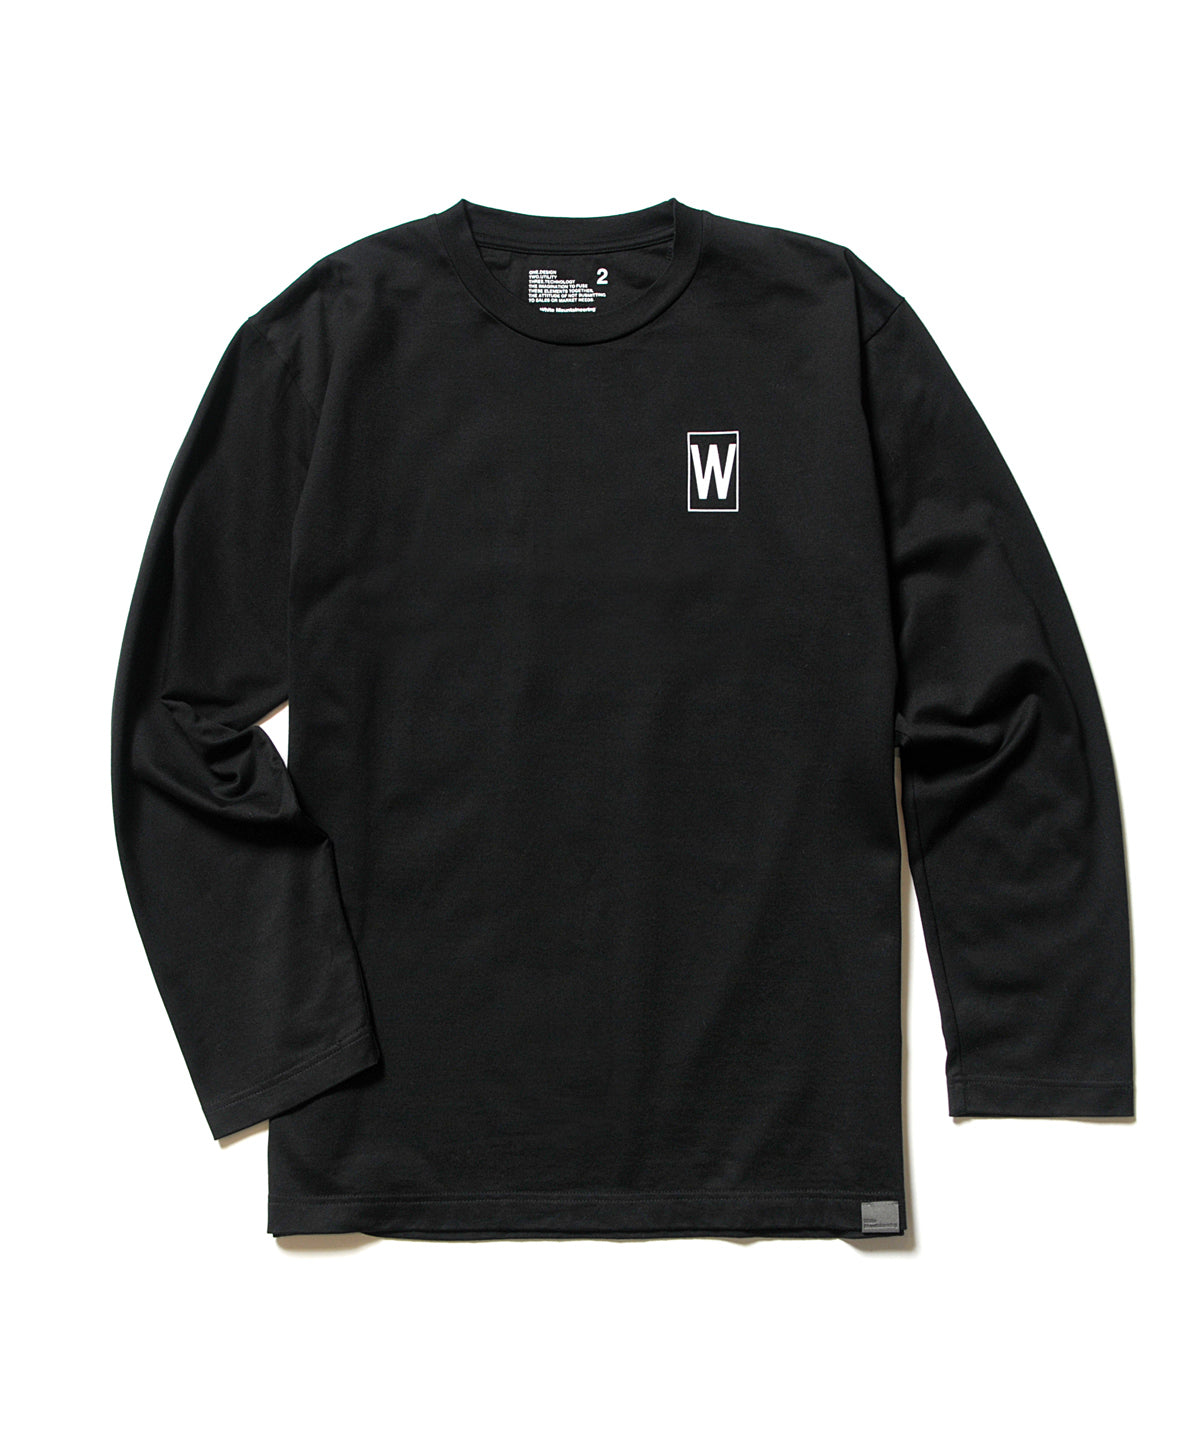 WHITE MOUNTAIN EXPERIMENT L/S T-SHIRT